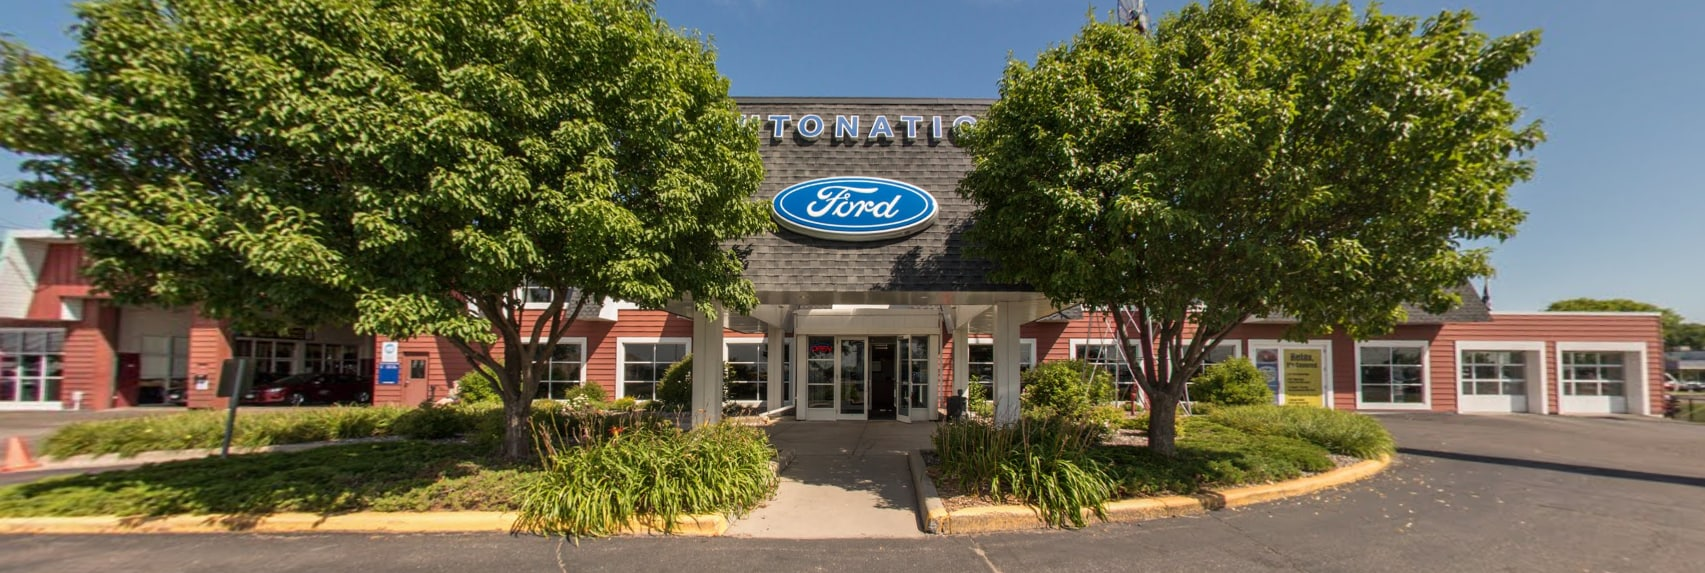 AutoNation Ford White Bear Lake directions and attractions in the Minneapolis area.